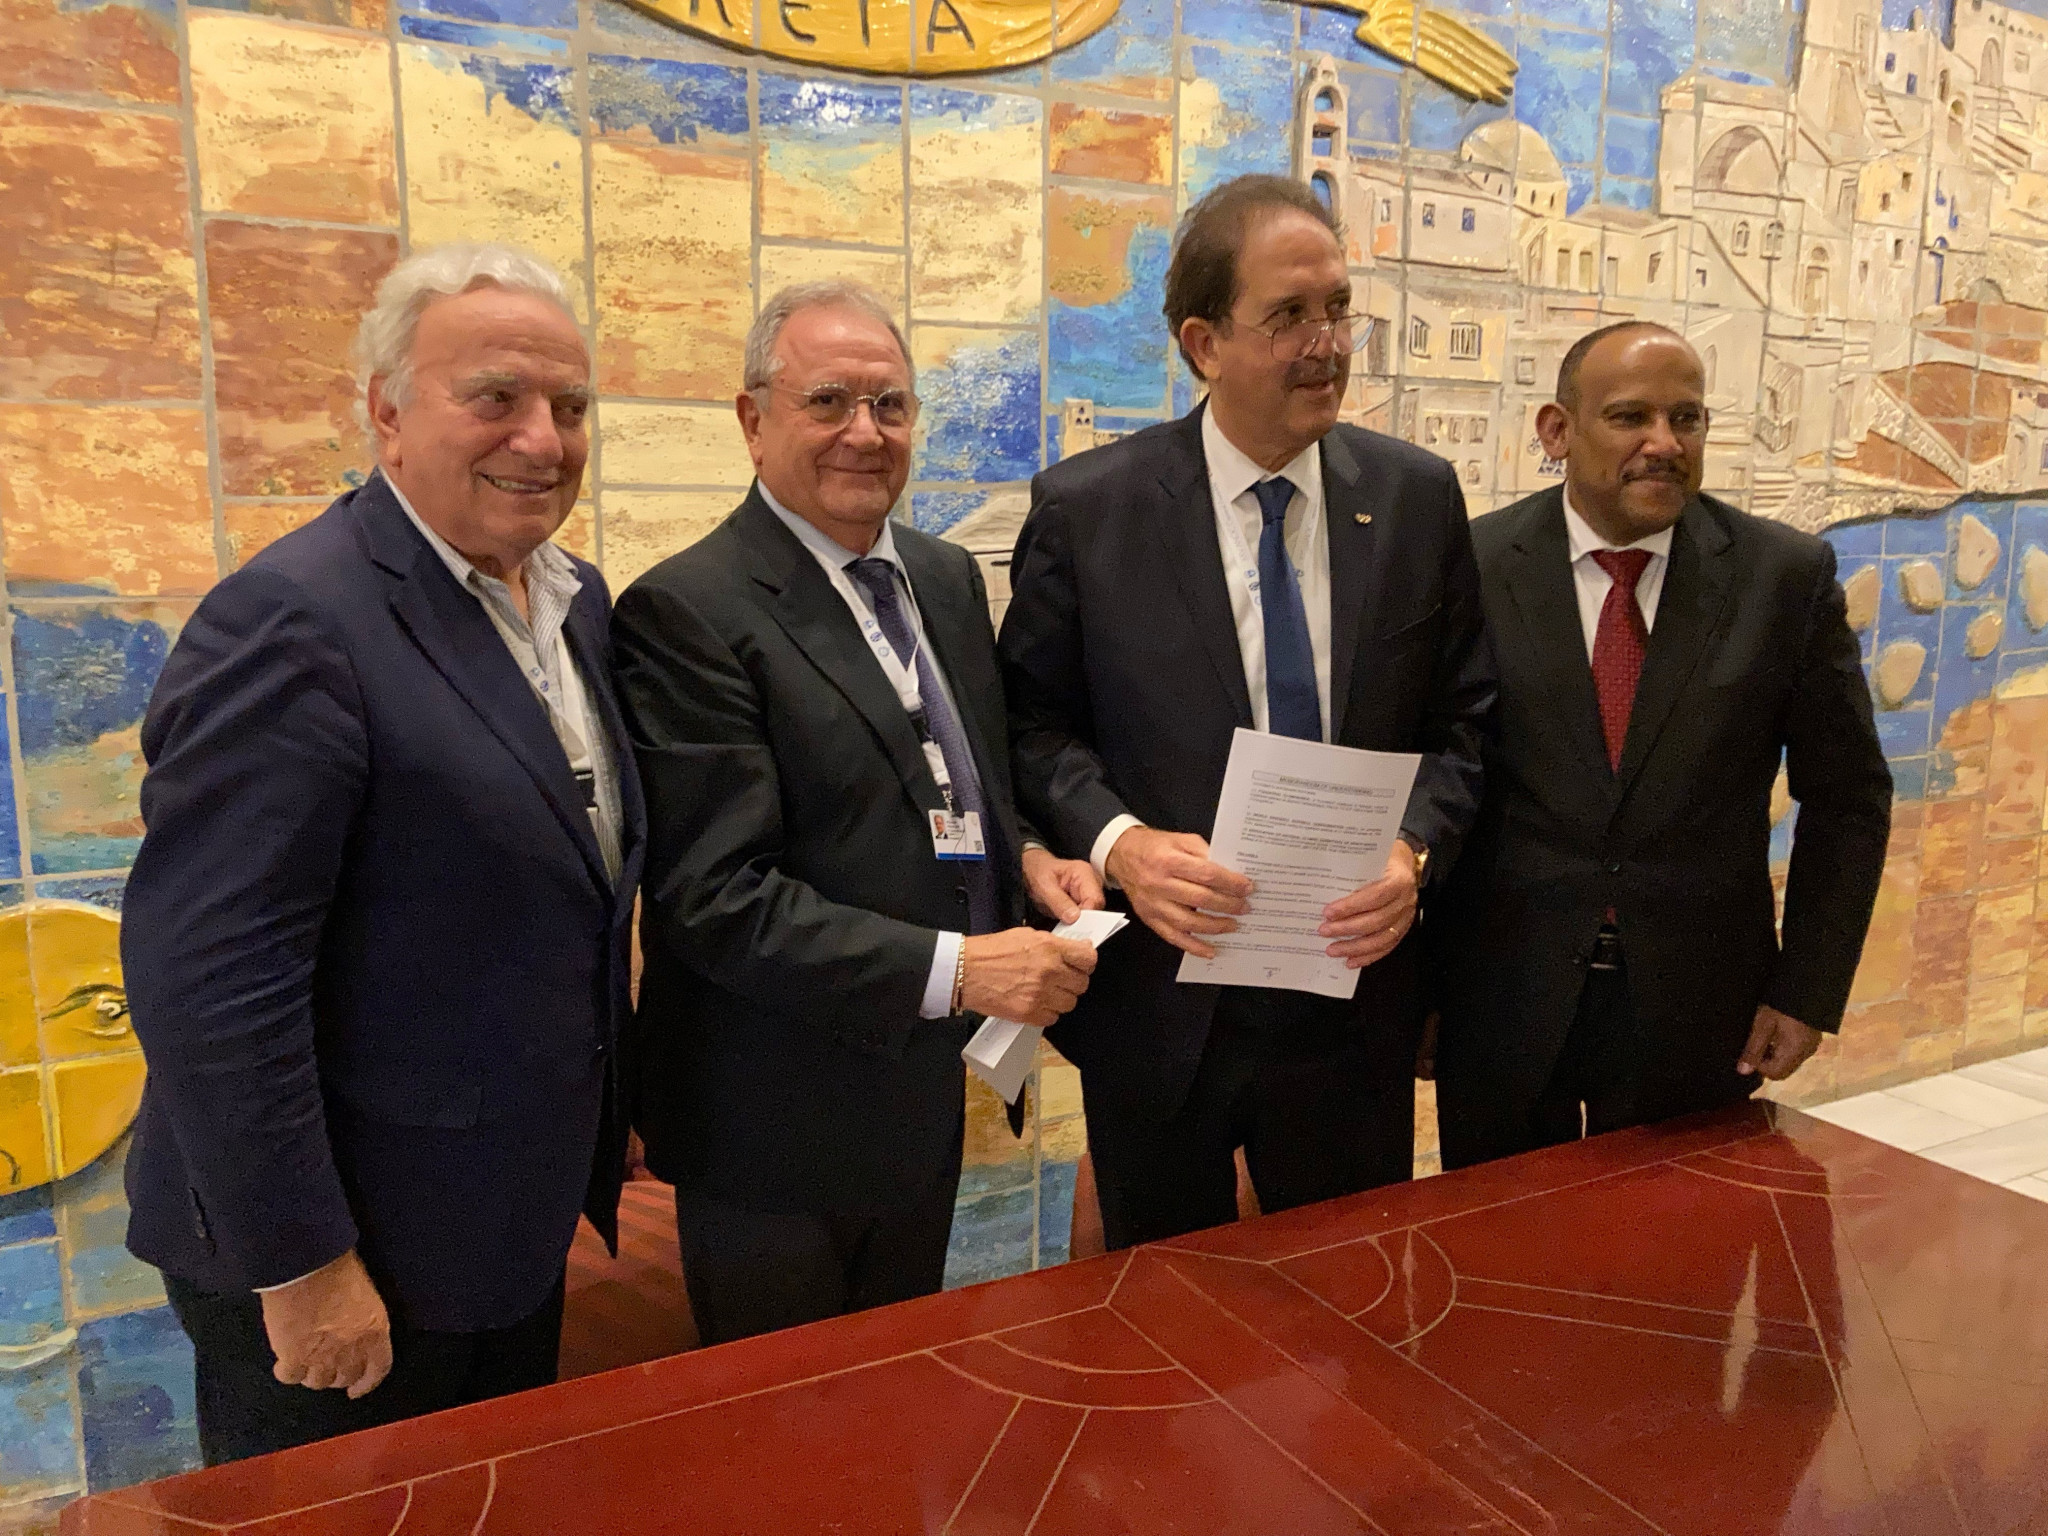 WBSC signs development deal with ANOCA and Olympafrica Foundation